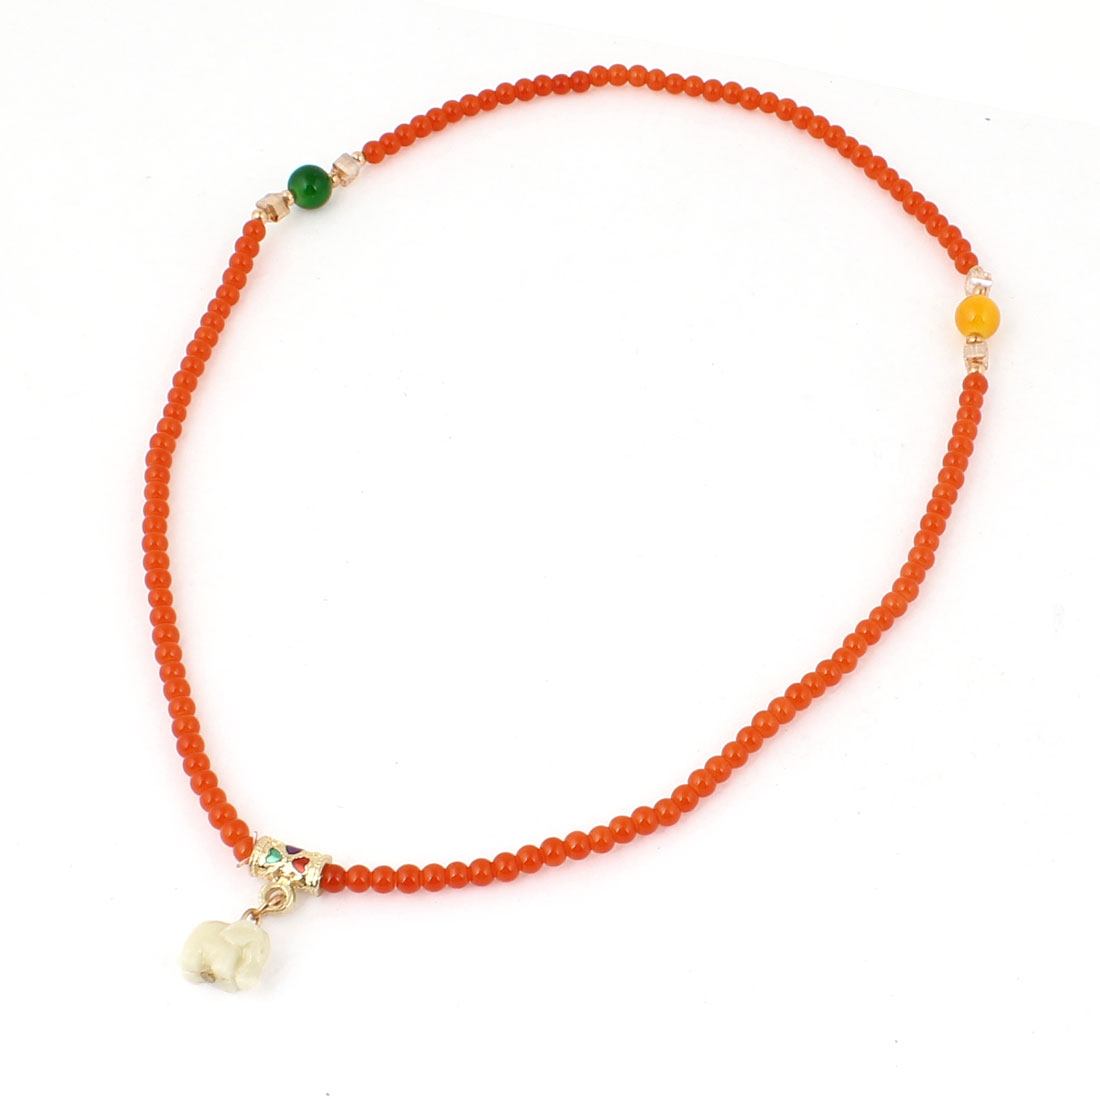 Girls Elephant Decor Plastic Beads Stretchy Necklace Ring Bracelet Orange Red